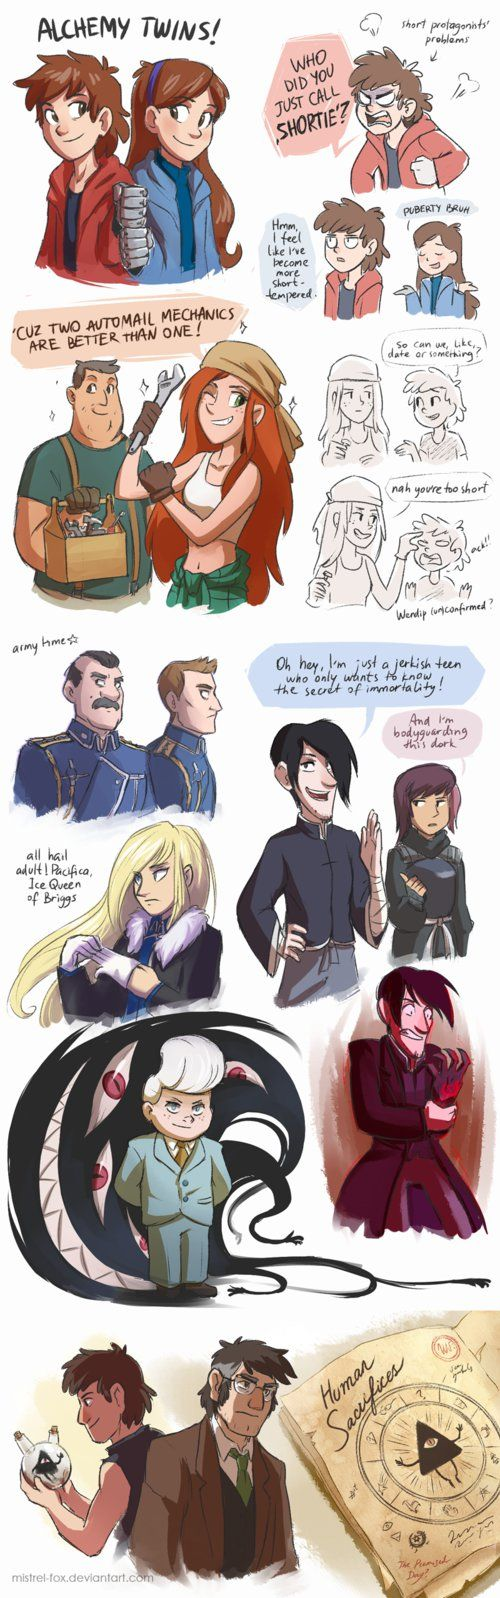 Tumblr post: Gravity Falls/Fullmetal Alchemist crossover AU, hell yeah! If you follow me on Tumblr, you most likely have seen the thing long ago, I just wanted to submit it to DA as well. Finally. ...